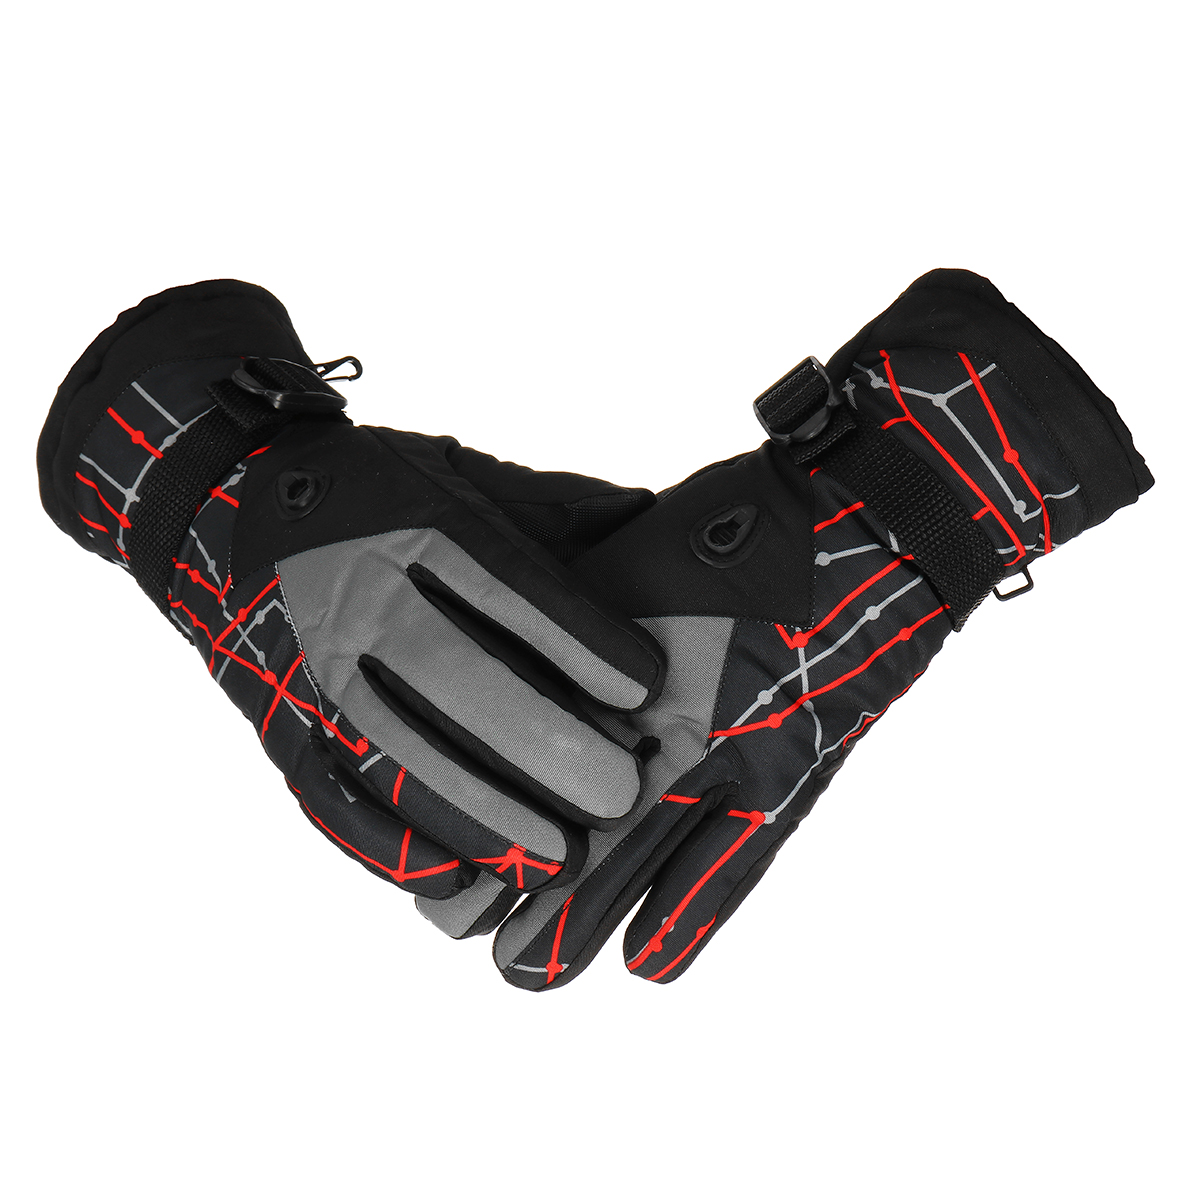 Winter Warm Velvet Gloves Touch Screen Waterproof Windproof Riding Cycling Skiing Climbing Gloves